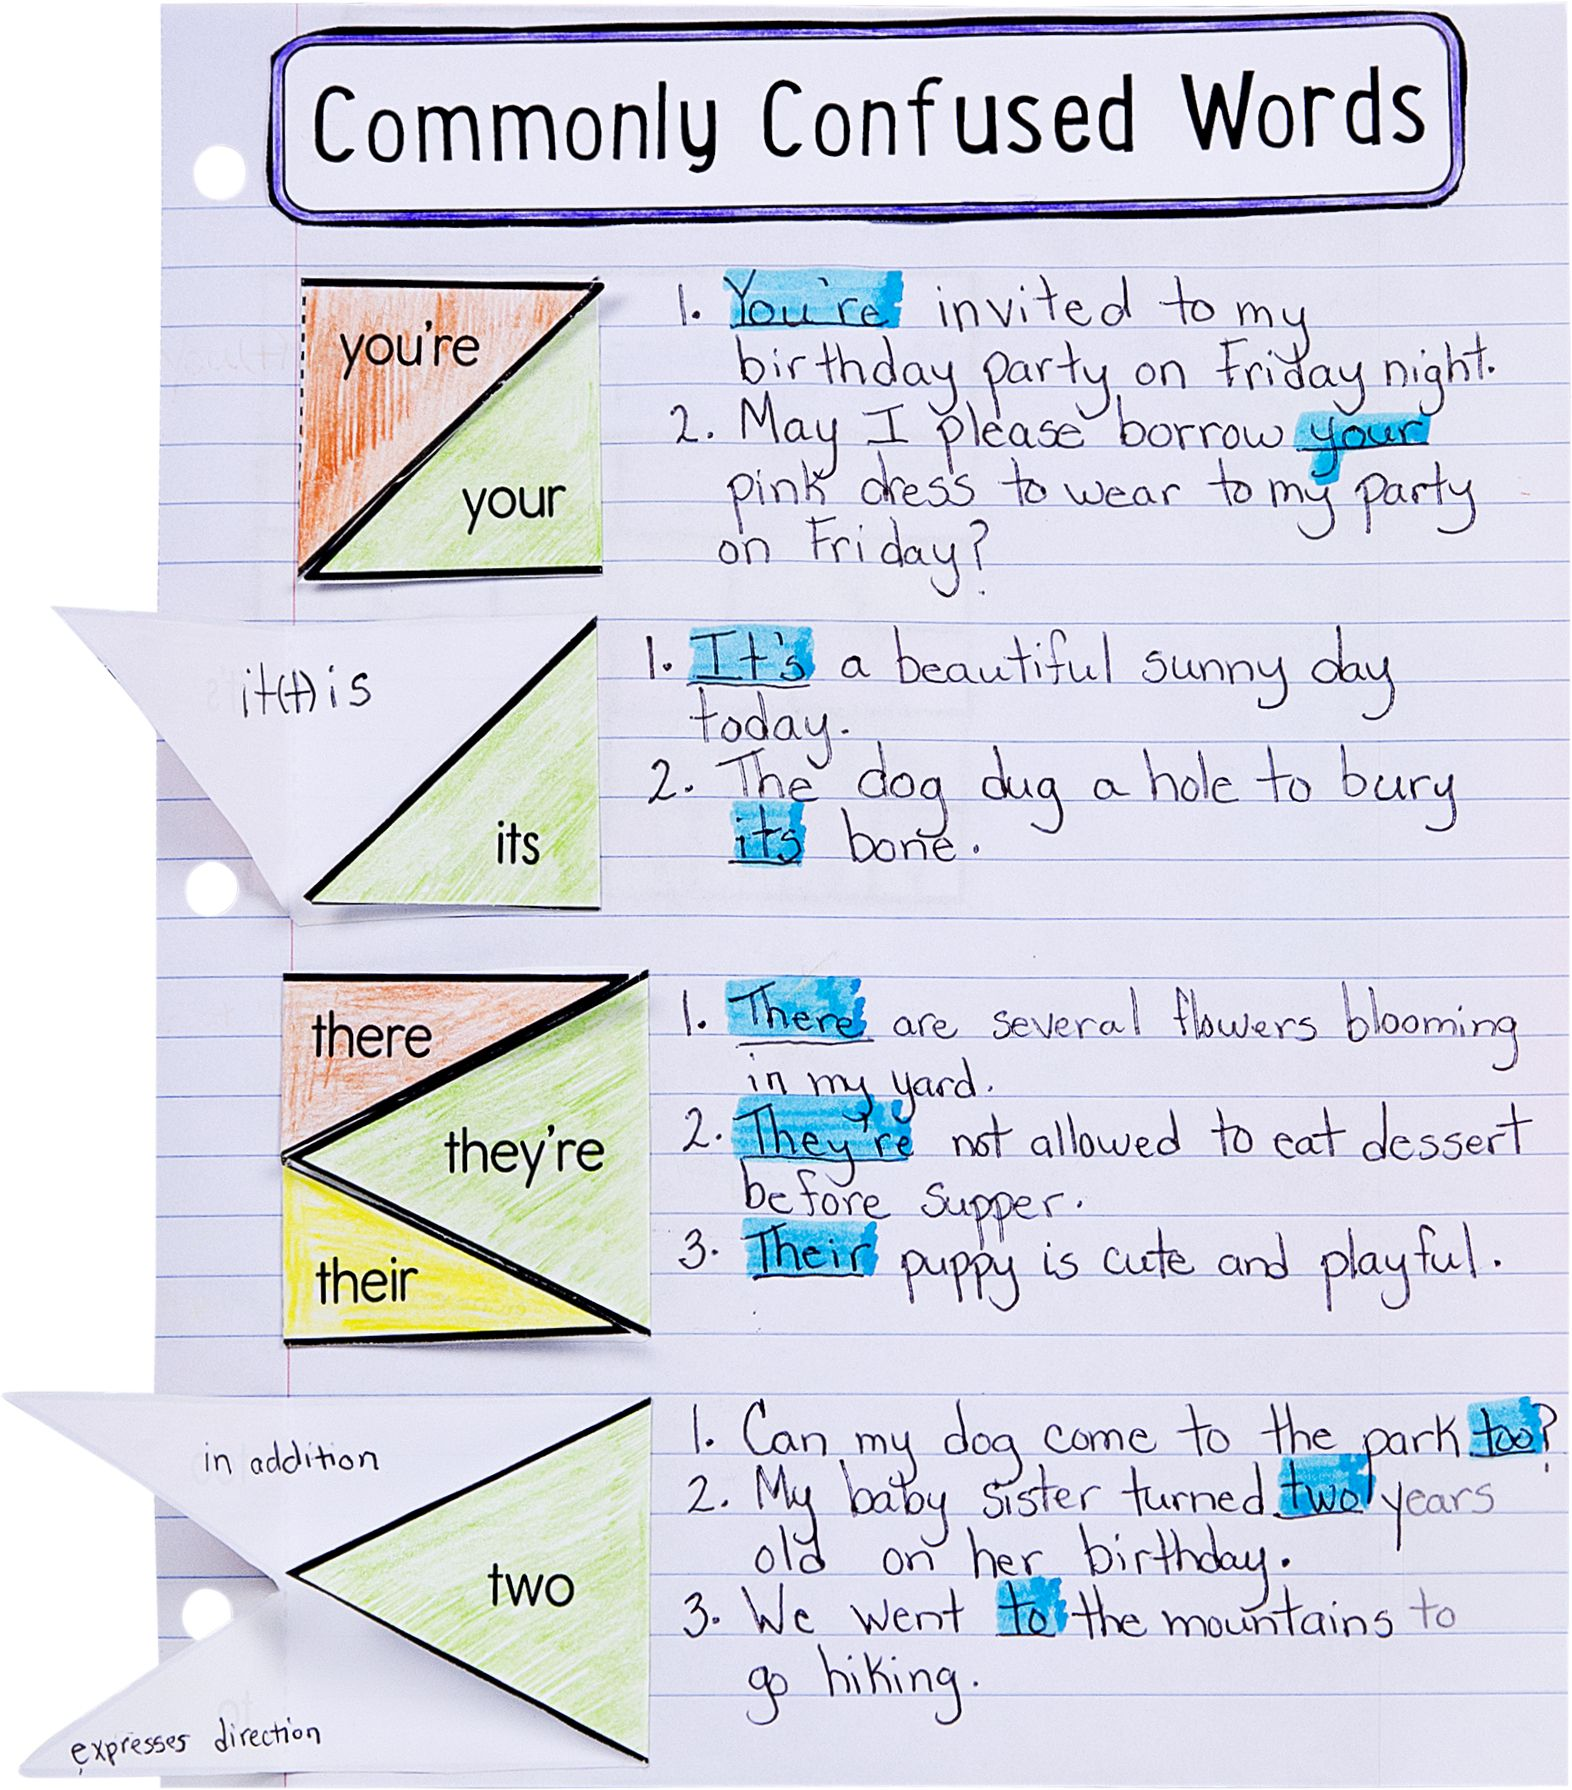 hight resolution of 18 Commonly confused words ideas   commonly confused words